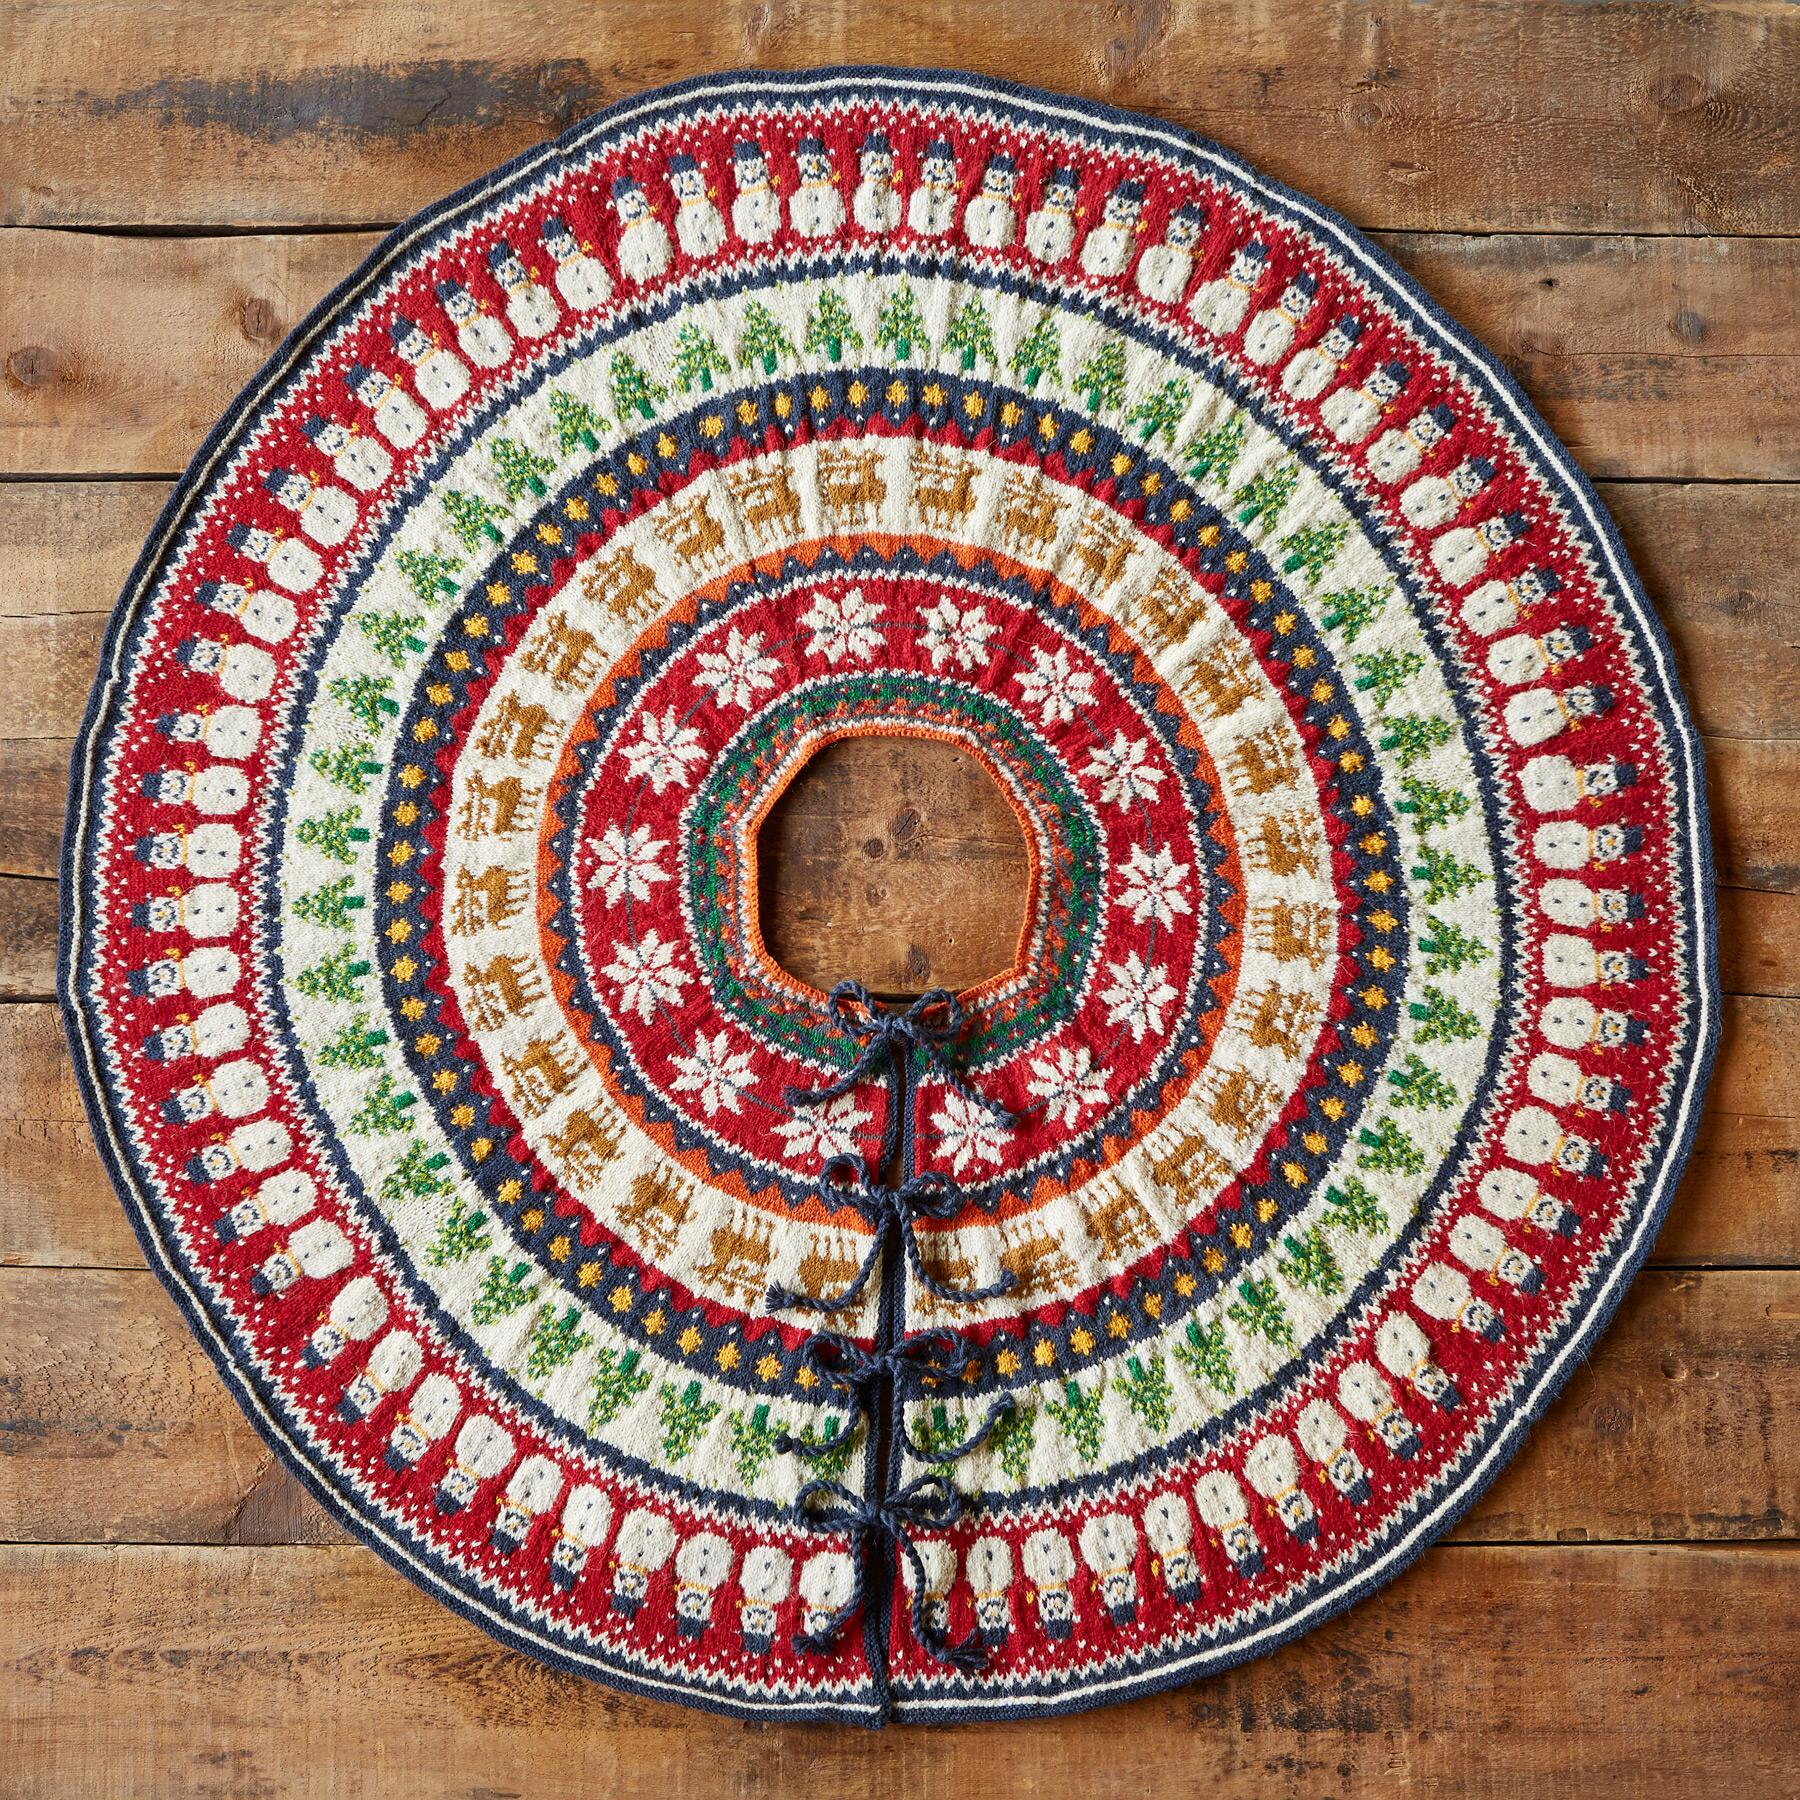 HEIRLOOM HOLIDAY MIX TREE SKIRT: View 2